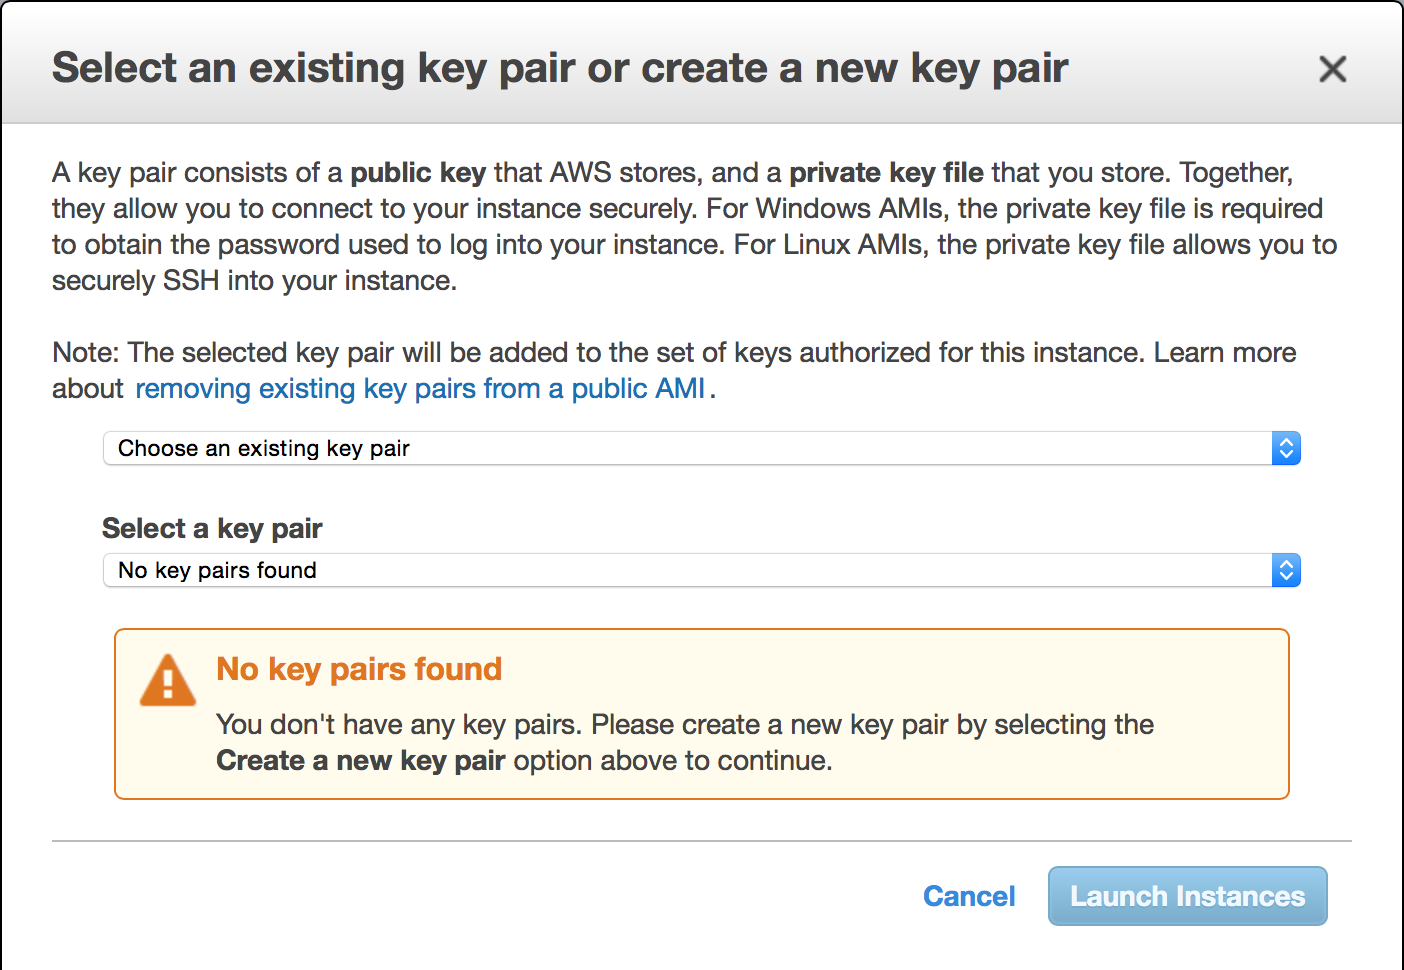 KeyPair: AWS generates a keypair for you  (make sure to save the PEM file!)